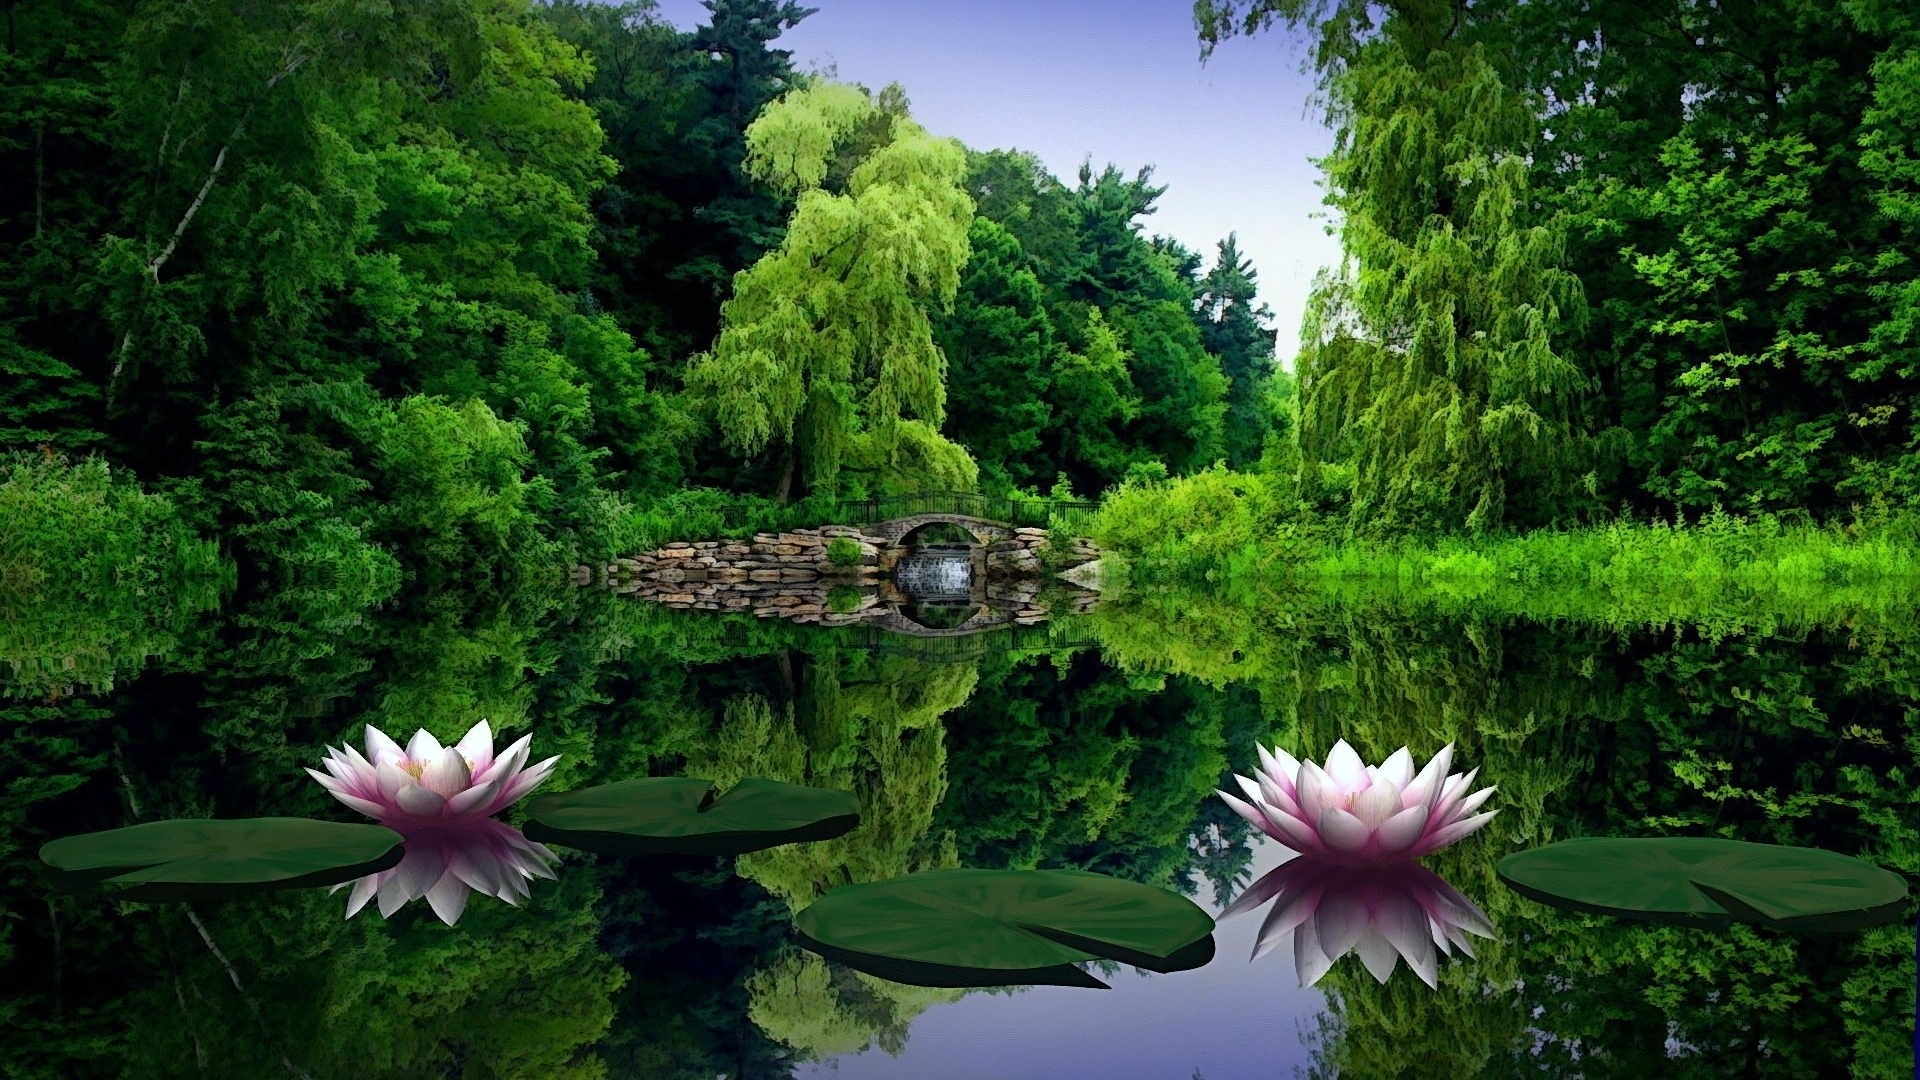 widescreen nature hd desktop backgrounds images with flower latest